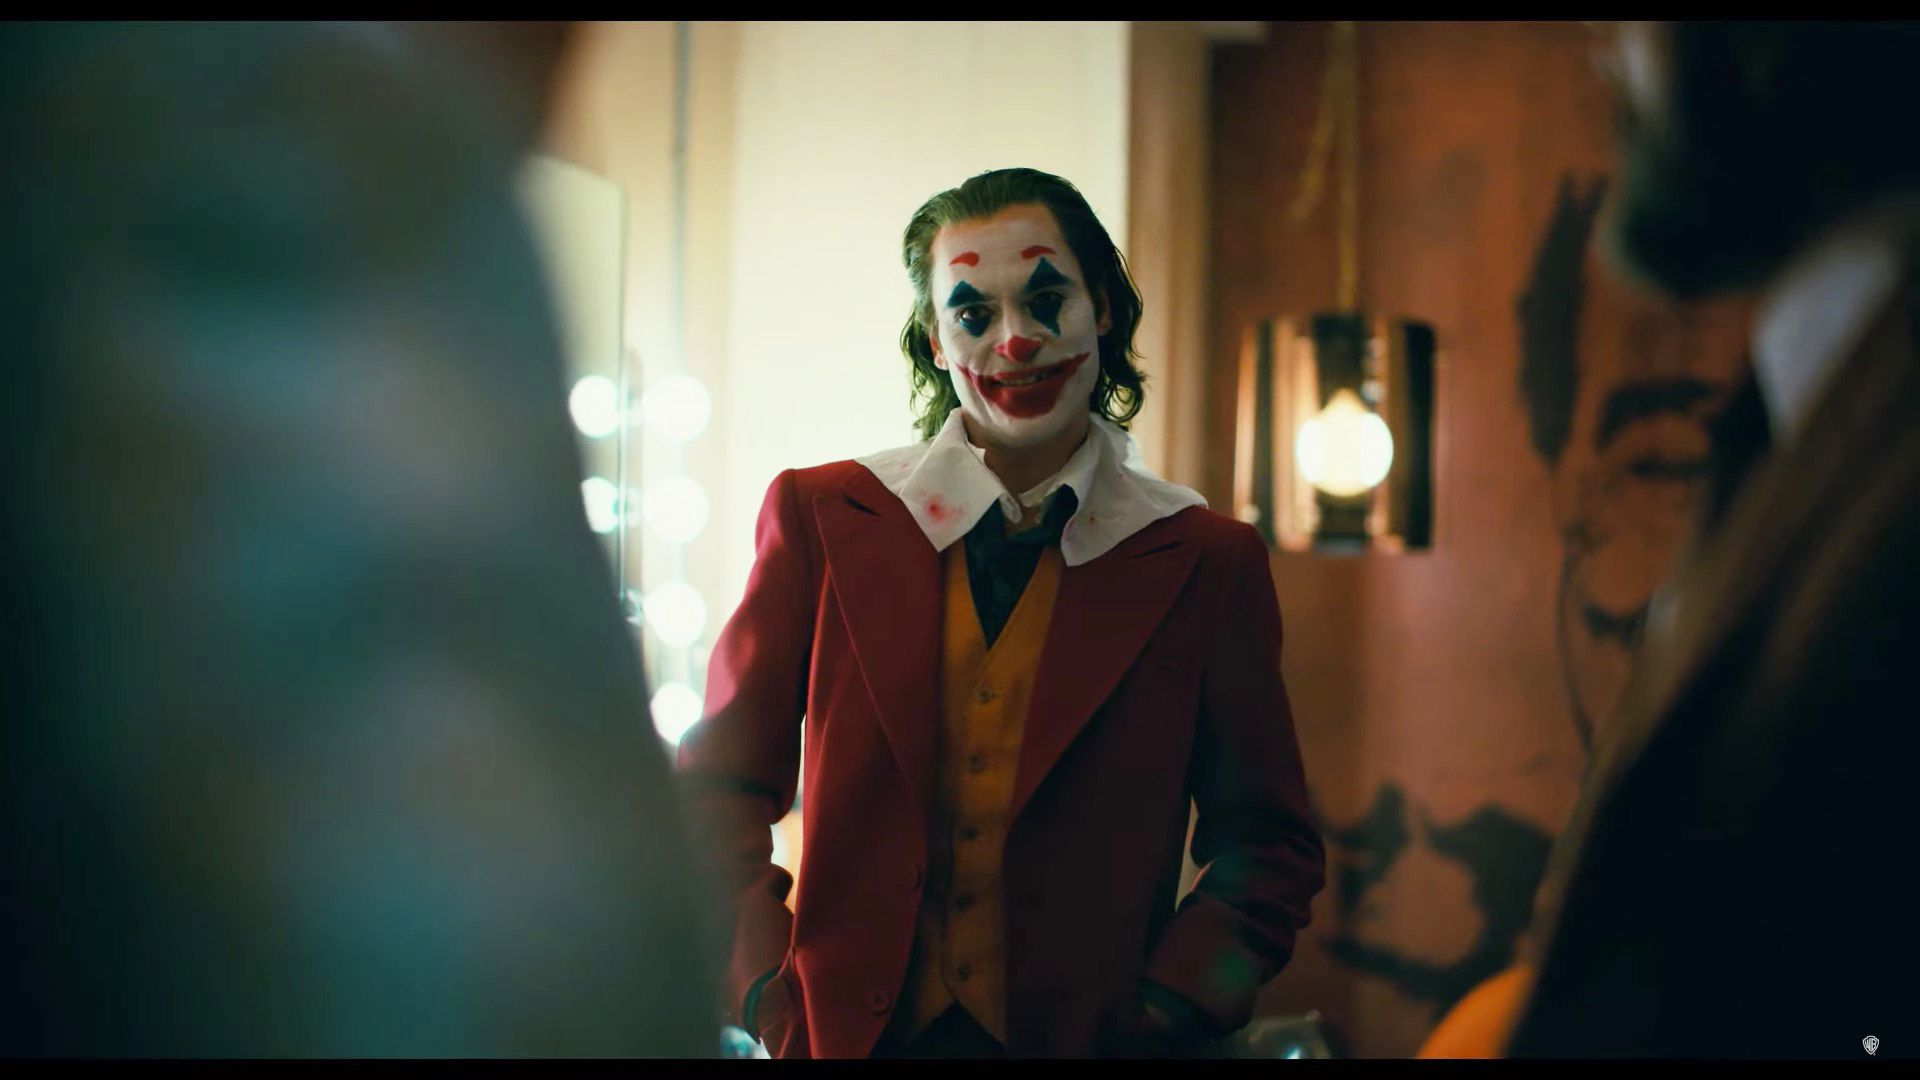 Joker movie's connection to the Worlds of DC is clarified once and for all